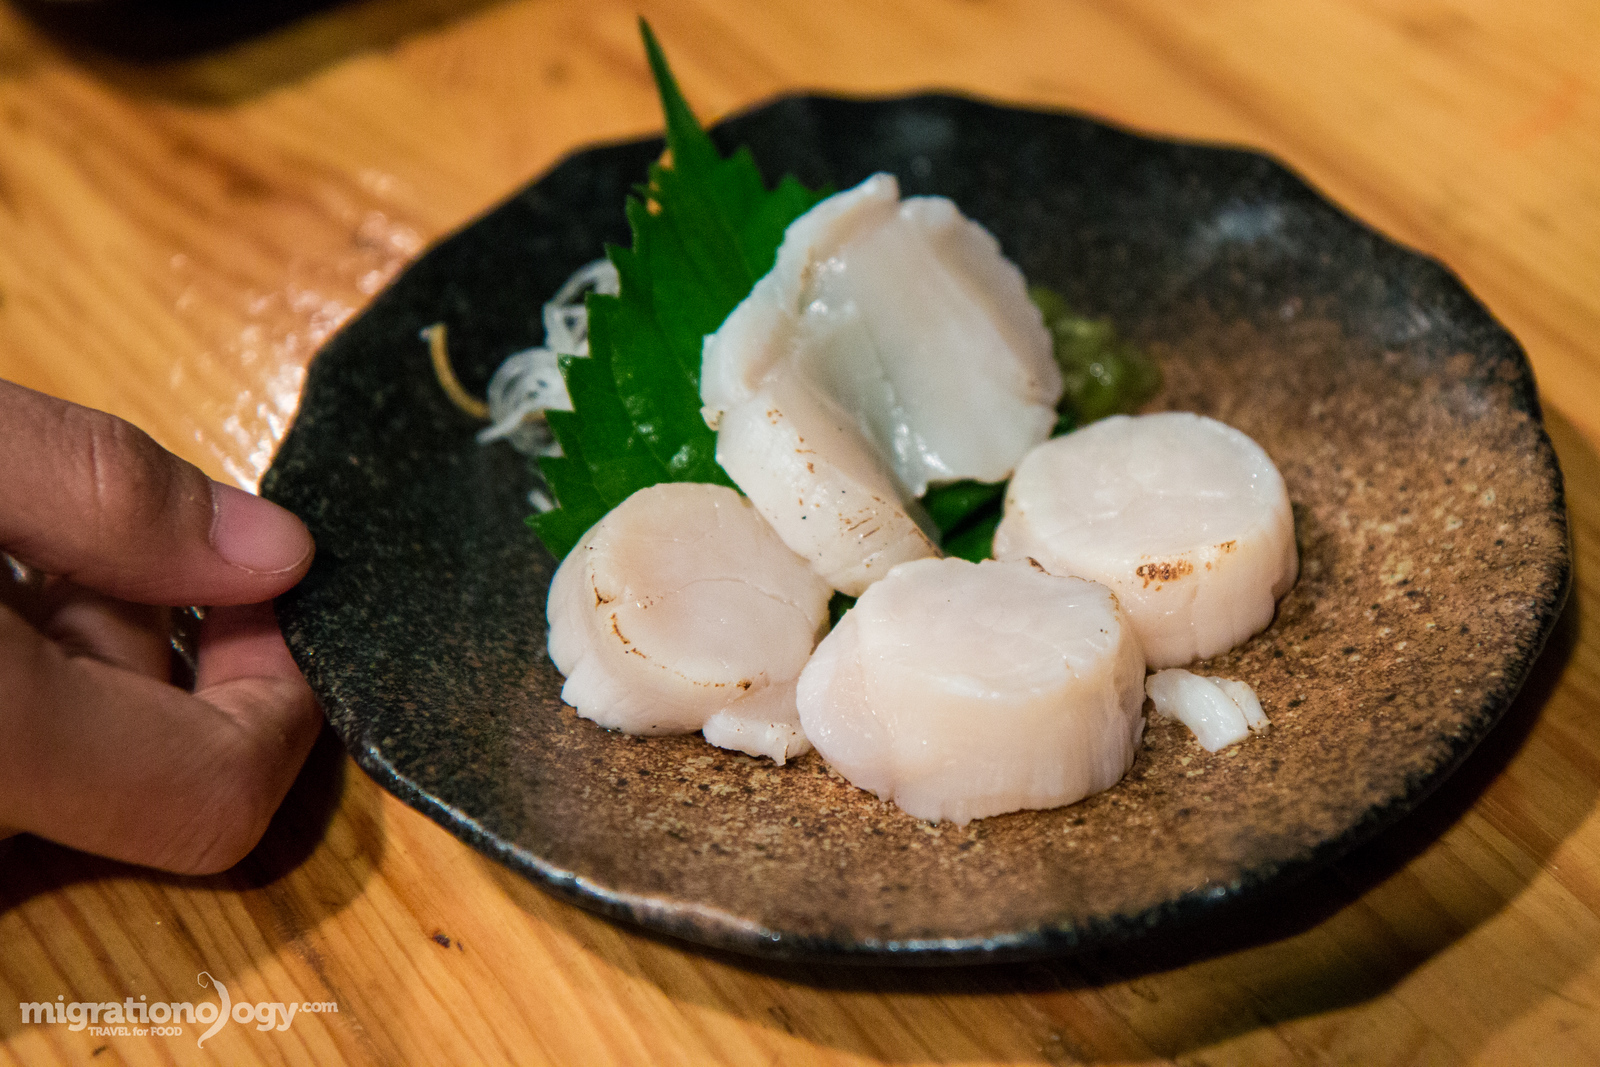 scallops in Japan